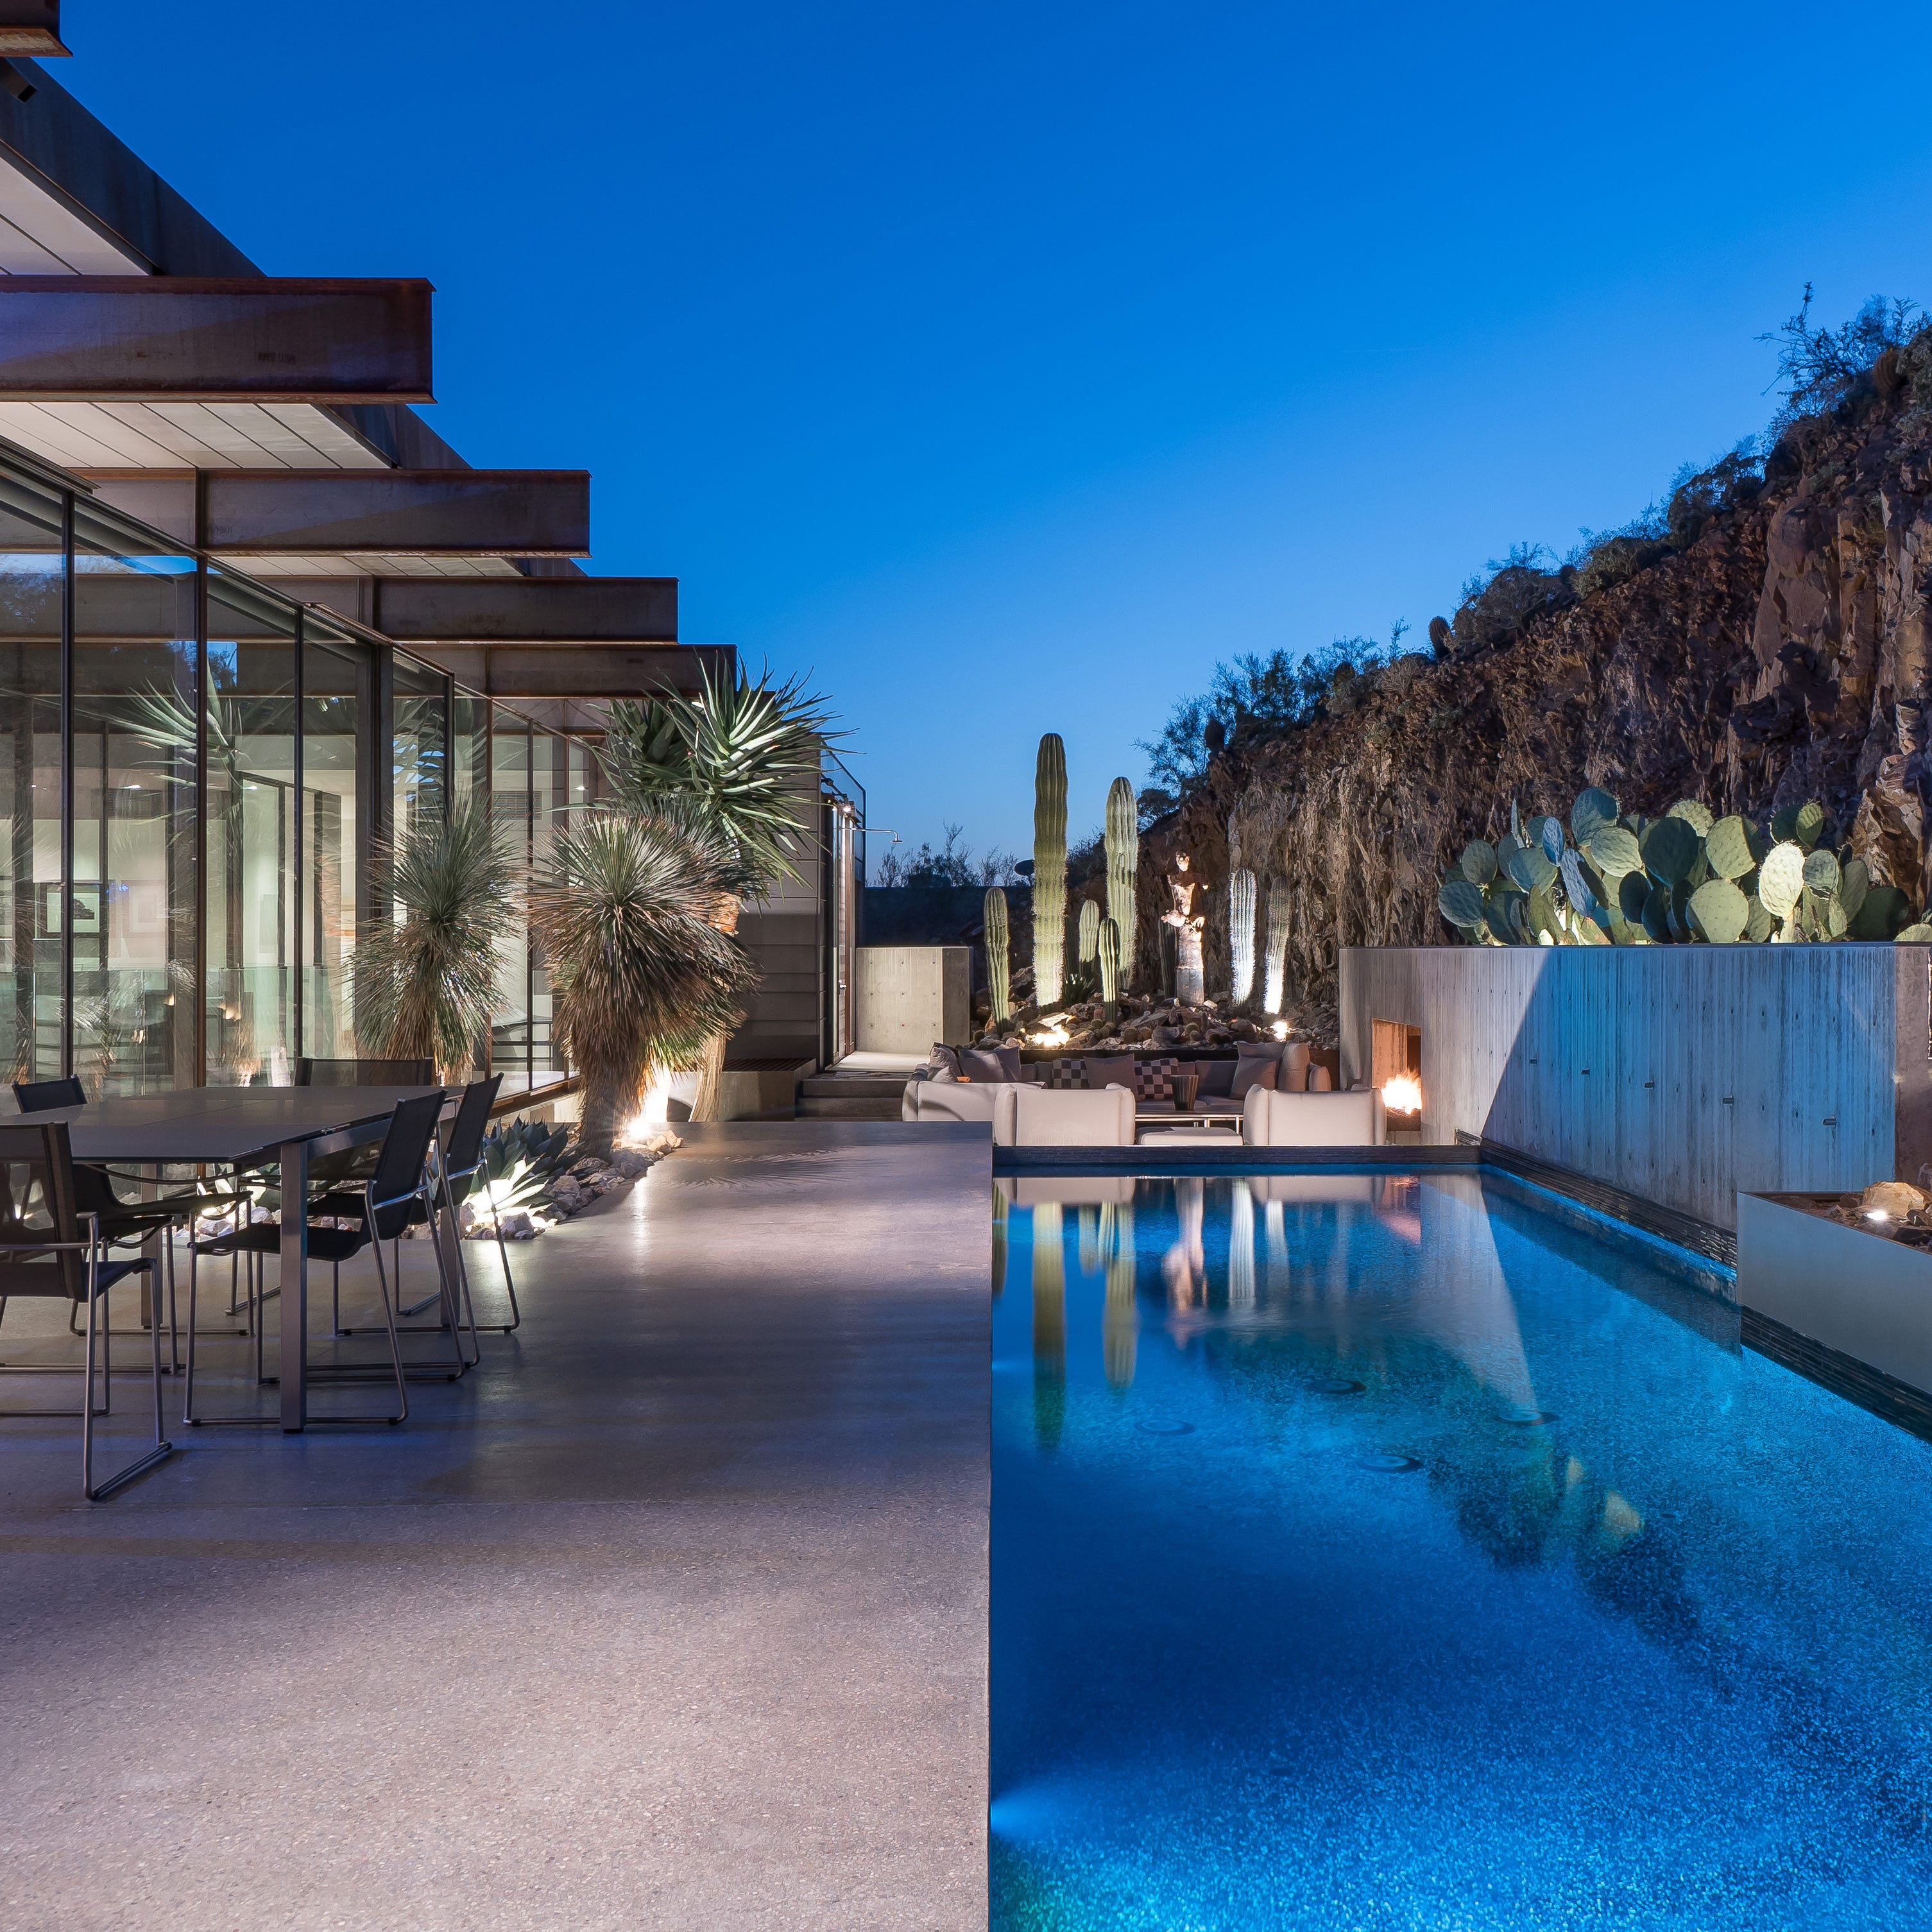 Paradise Valley house with metal exterior, walls of glass sells for $4.03M